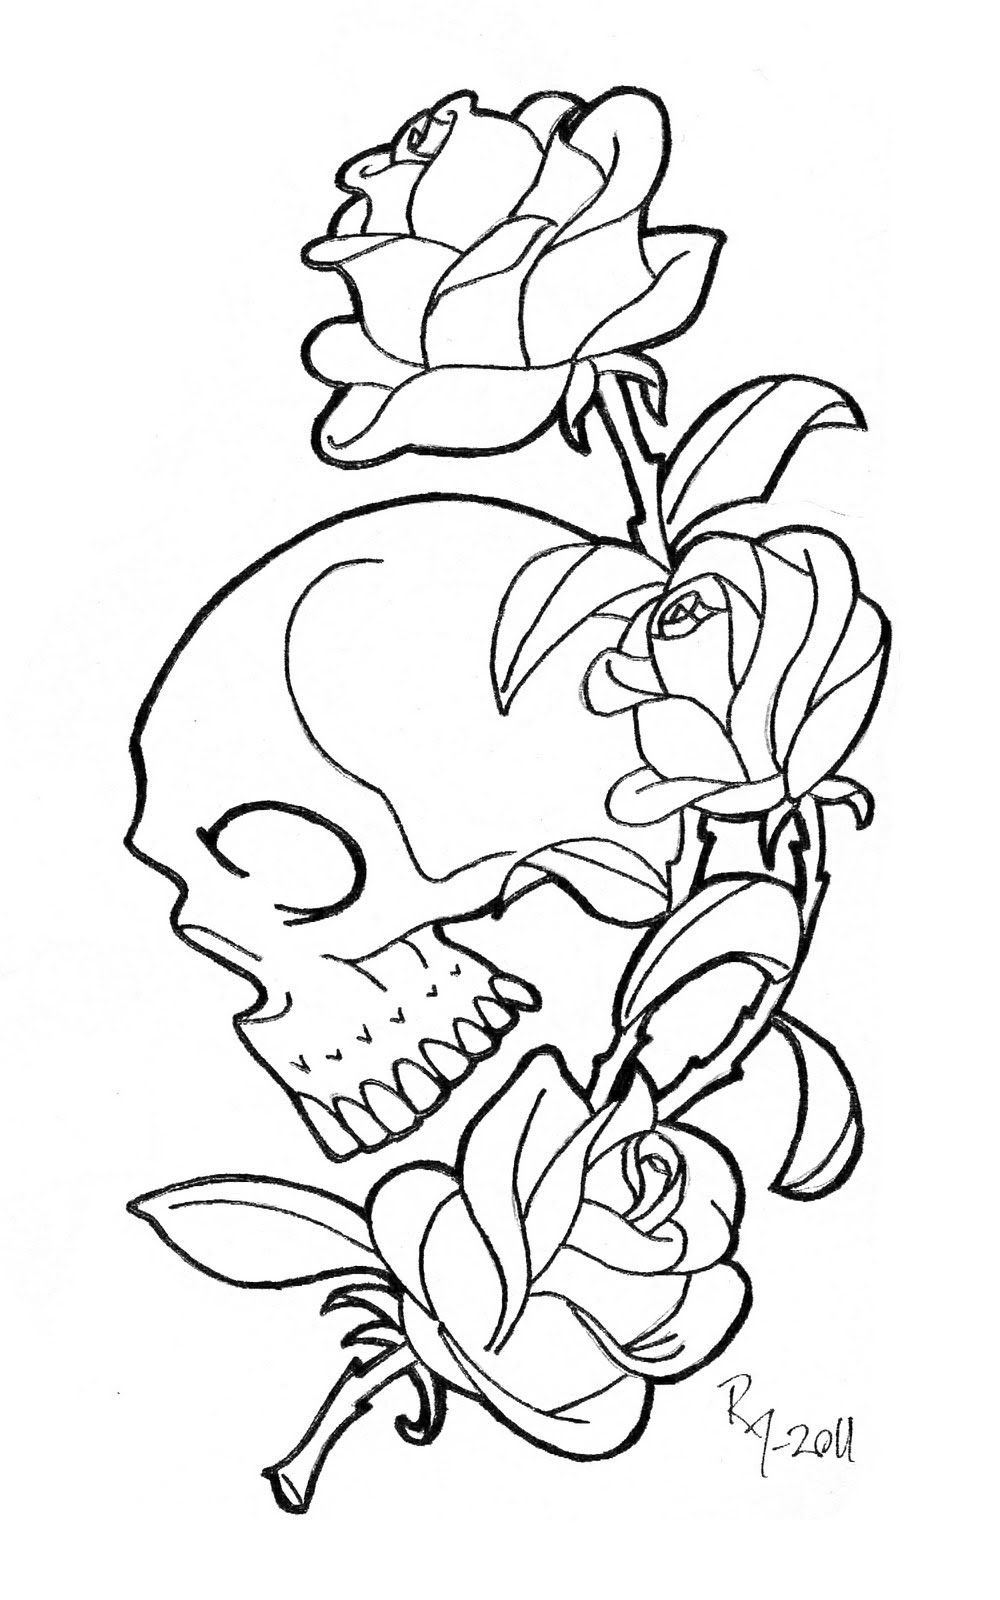 Skull With Roses Coloring Pages Skull Coloring Pages Rose Coloring Pages Tattoo Coloring Book